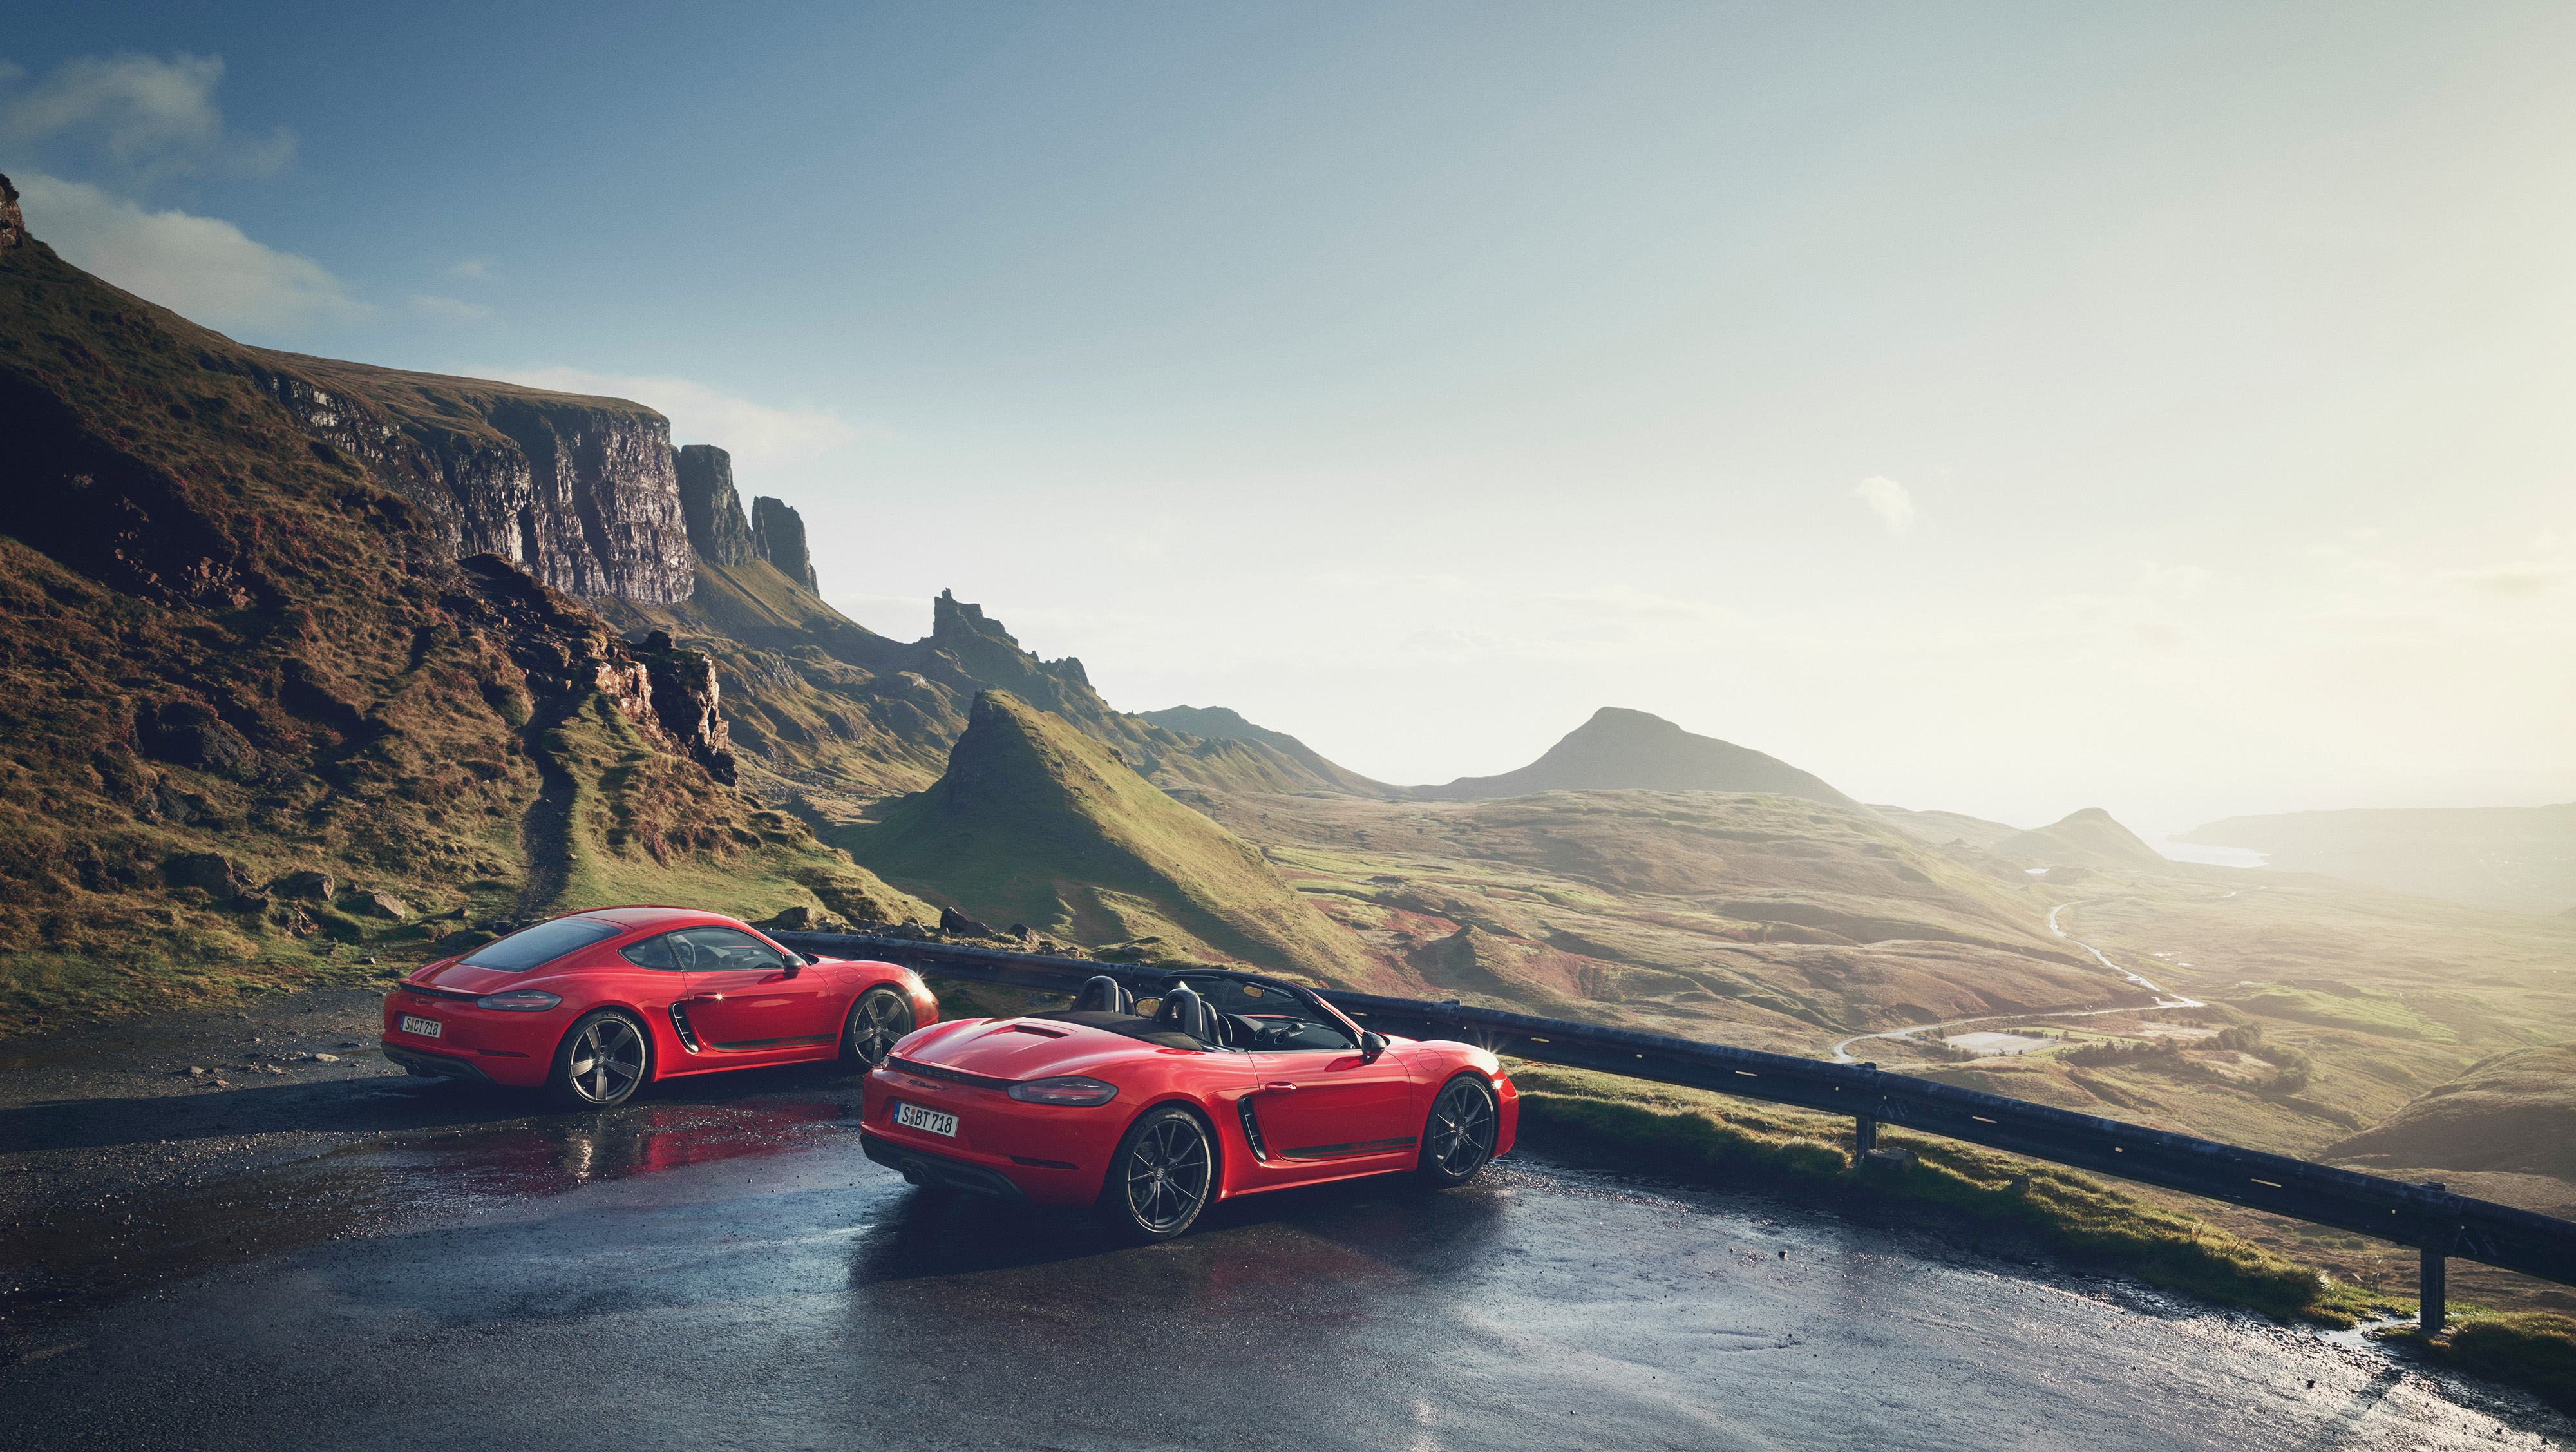 2019 Porsche 718 Boxster and Cayman T Side Wallpaper (11)